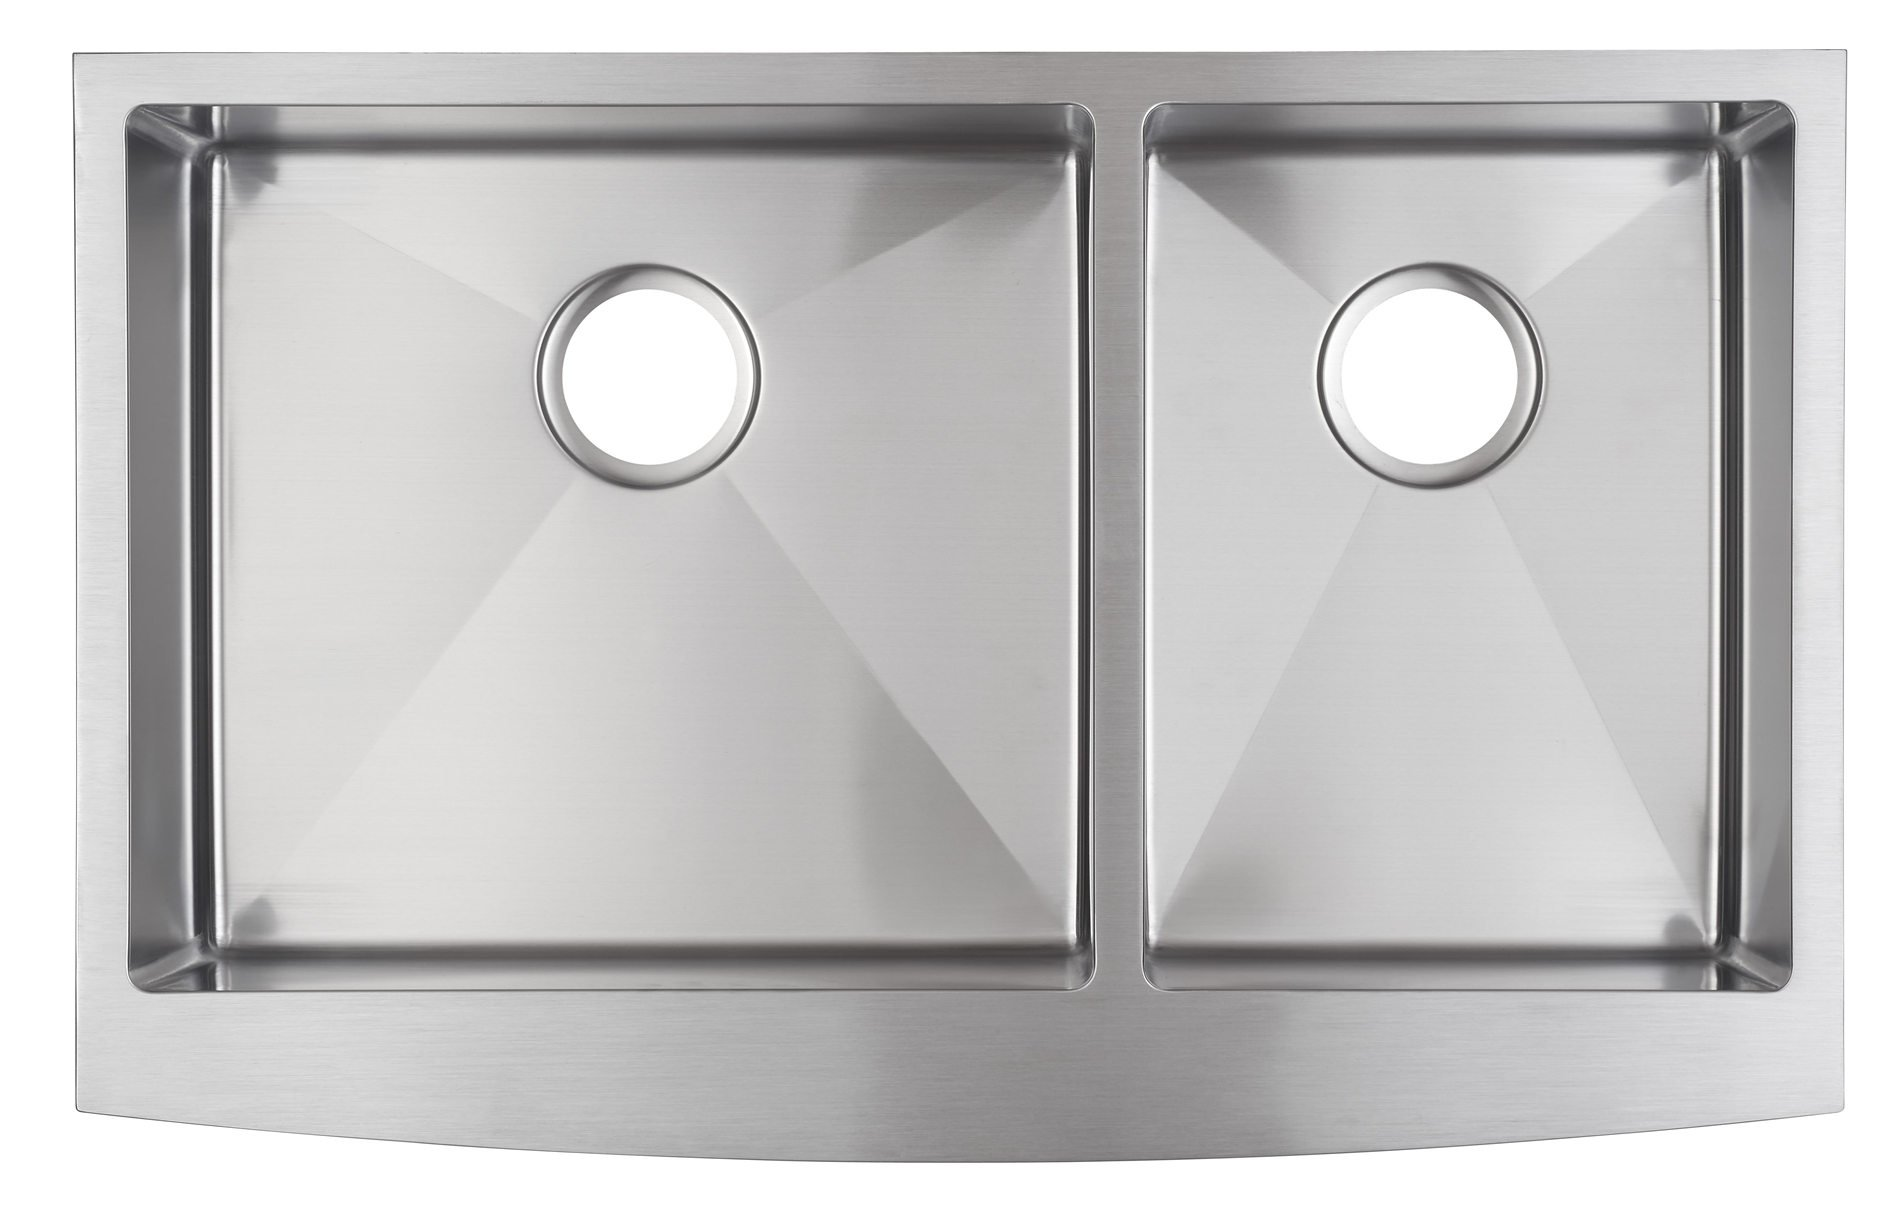 33x21 Inch Farmhouse Apron 60/40 Deep Double Bowl 16 Gauge Stainless Steel Luxury Kitchen Sink SuperSuper by SuperSuper (Image #3)